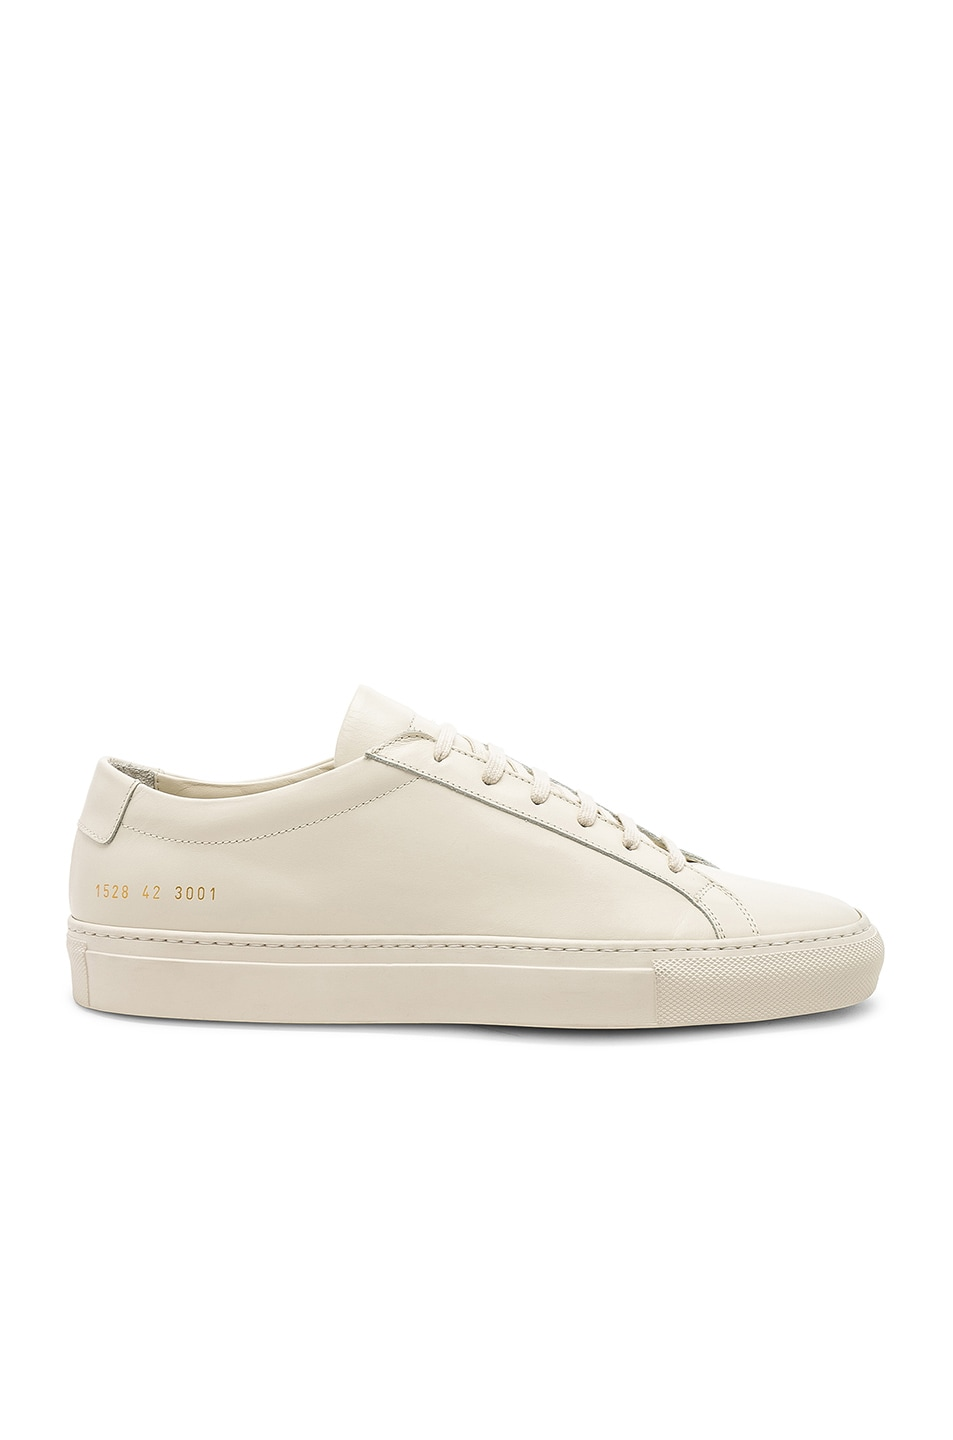 Image 2 of Common Projects Original Leather Achilles Low in Warm White